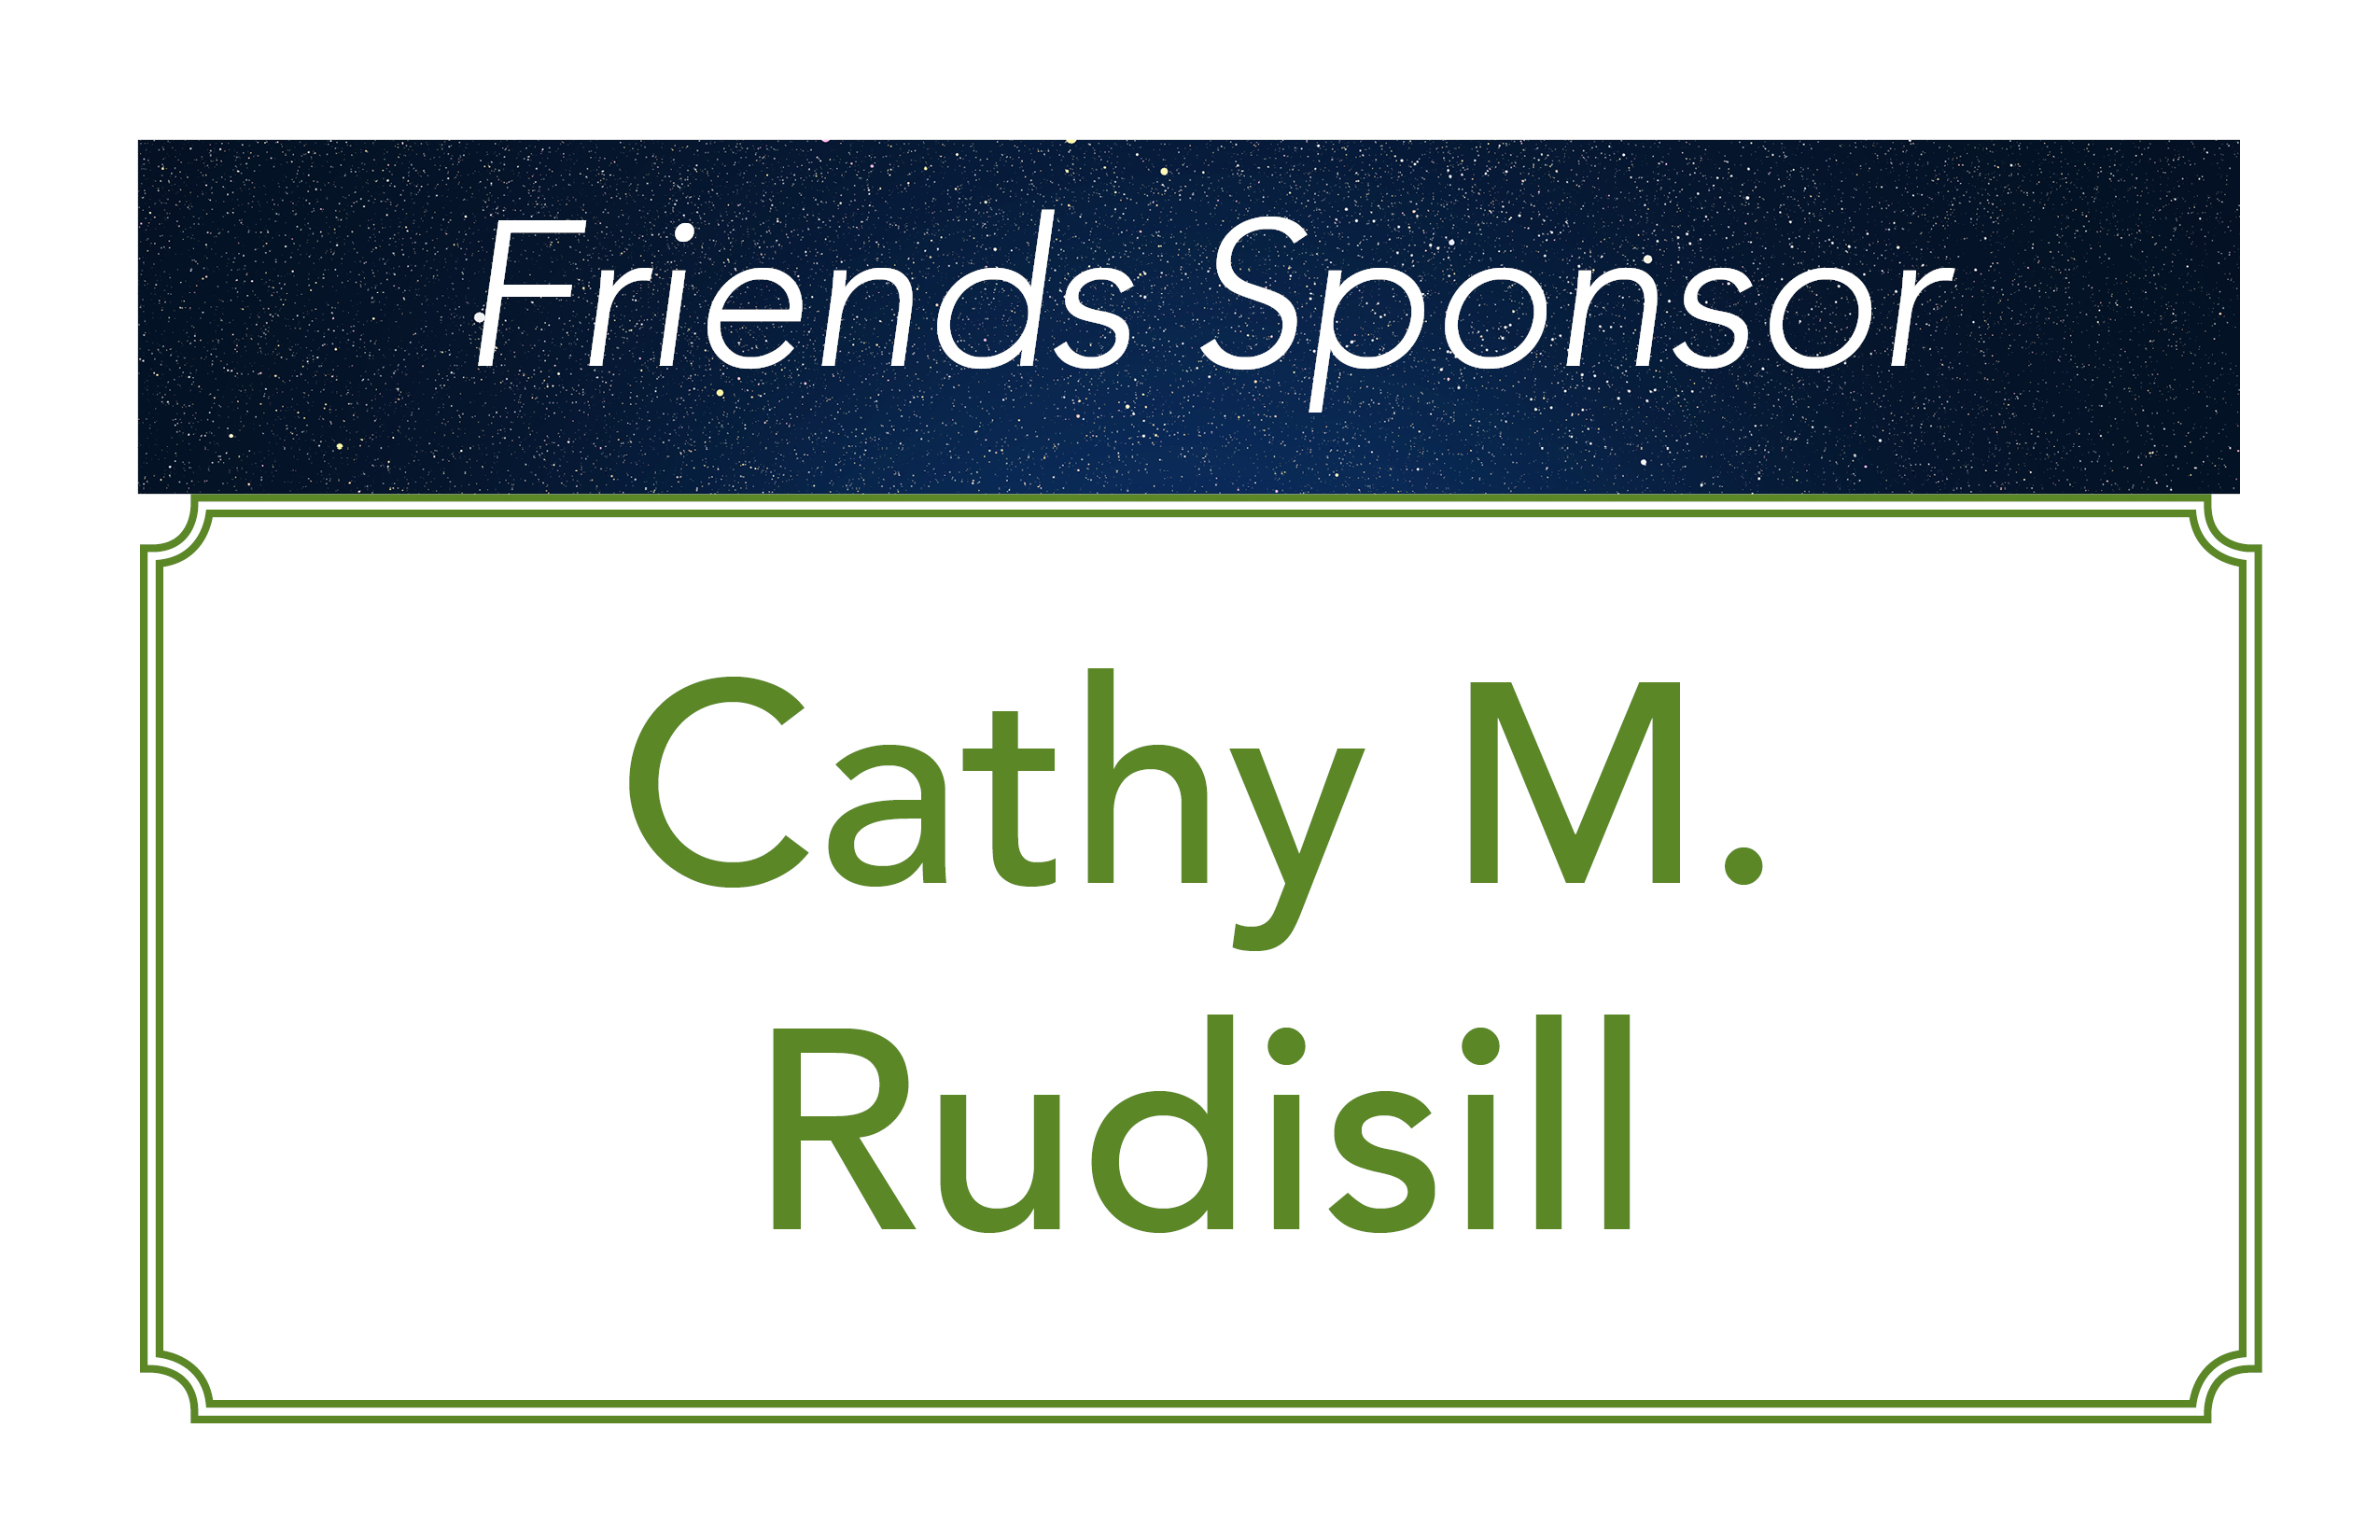 Cathy M. Rudisill, Friends Sponsor